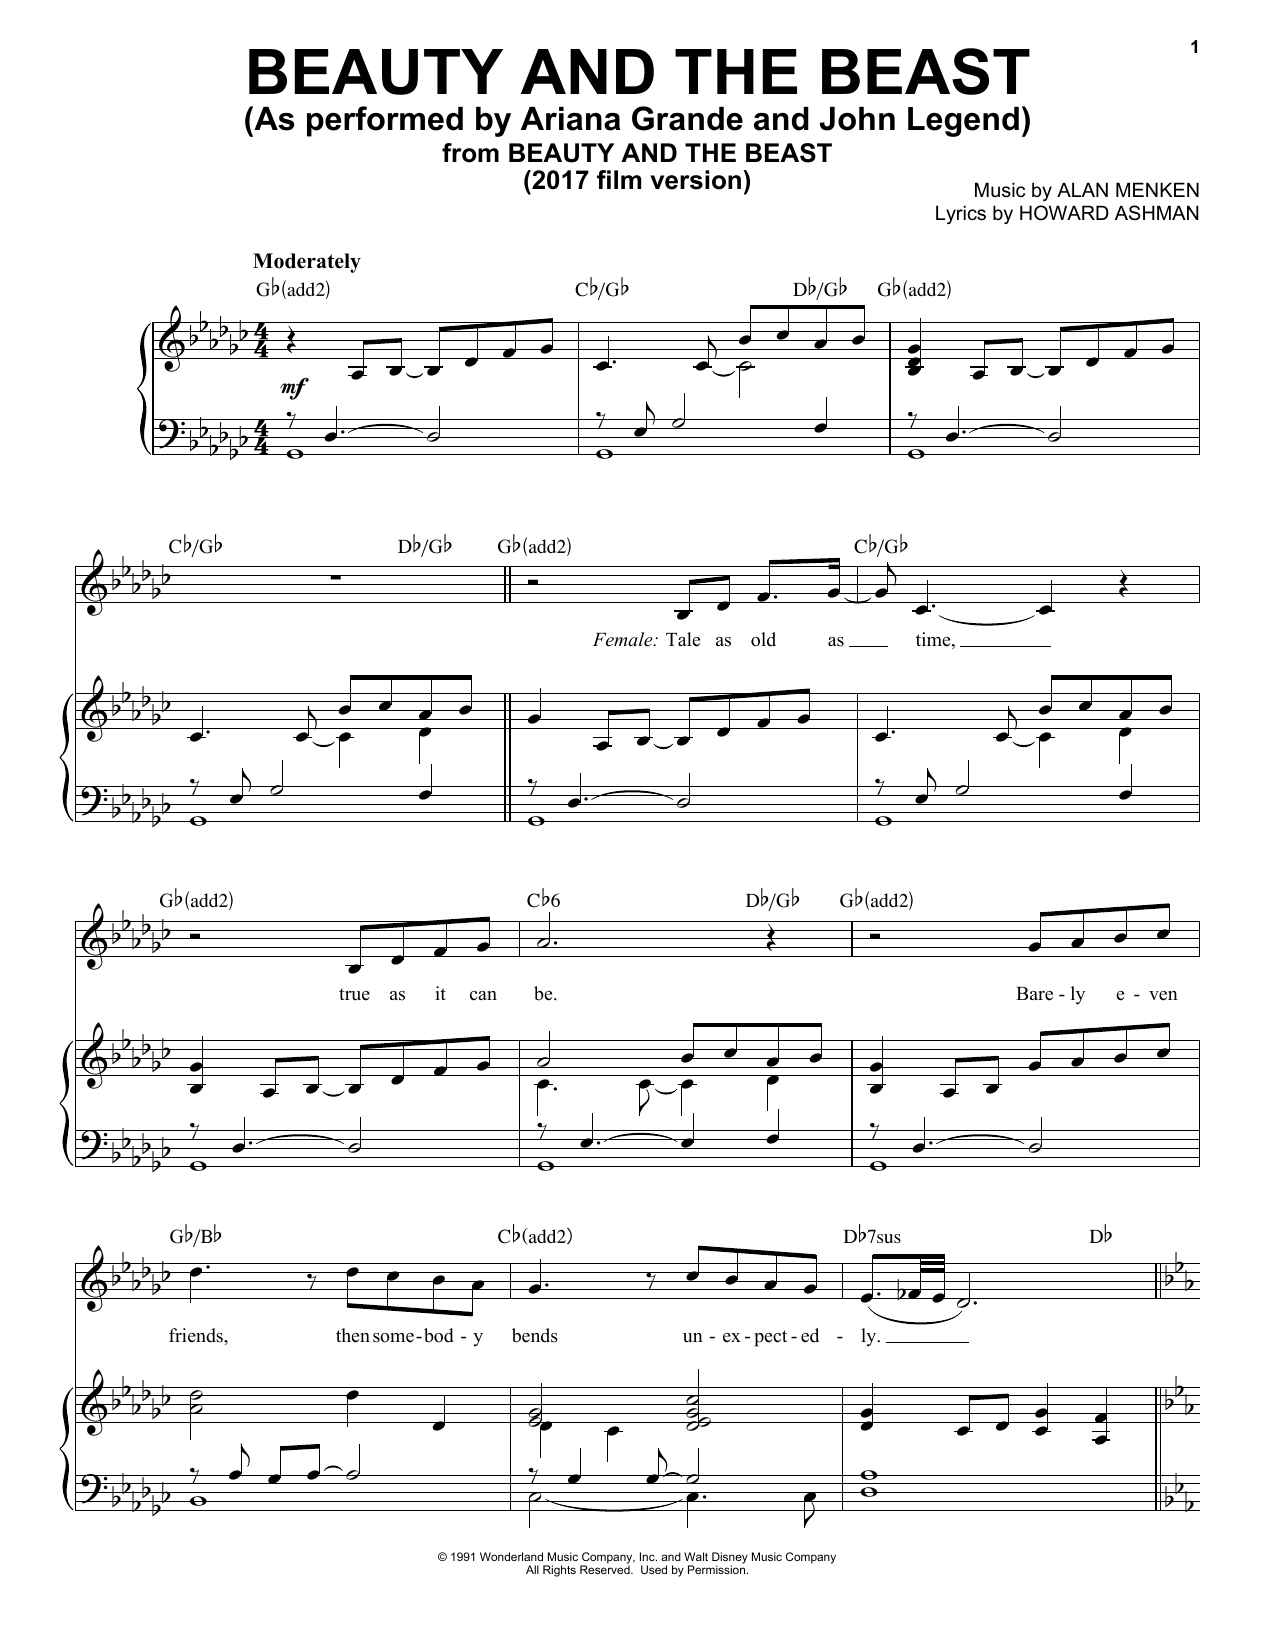 image about Beauty and the Beast Piano Sheet Music Free Printable referred to as Ariana Grande John Legend Splendor And The Beast Sheet Audio Notes, Chords Down load Printable Piano, Vocal Backing Monitor - SKU: 181363